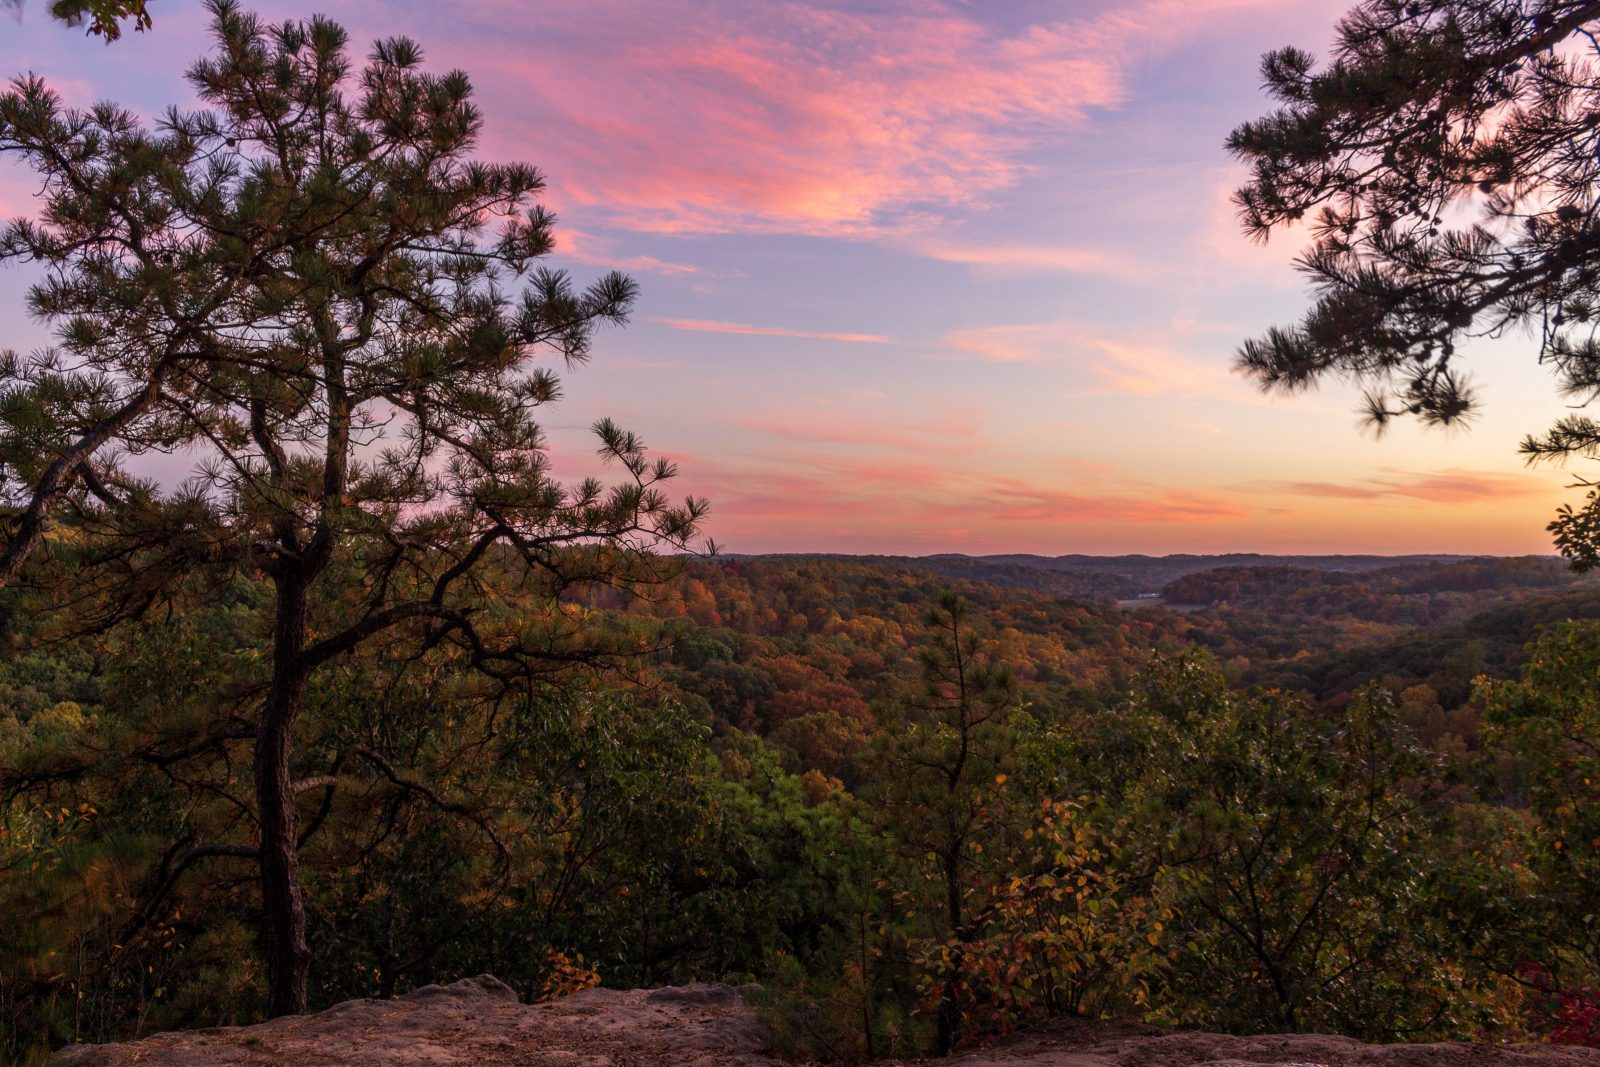 Sunset from Jacob's Ladder